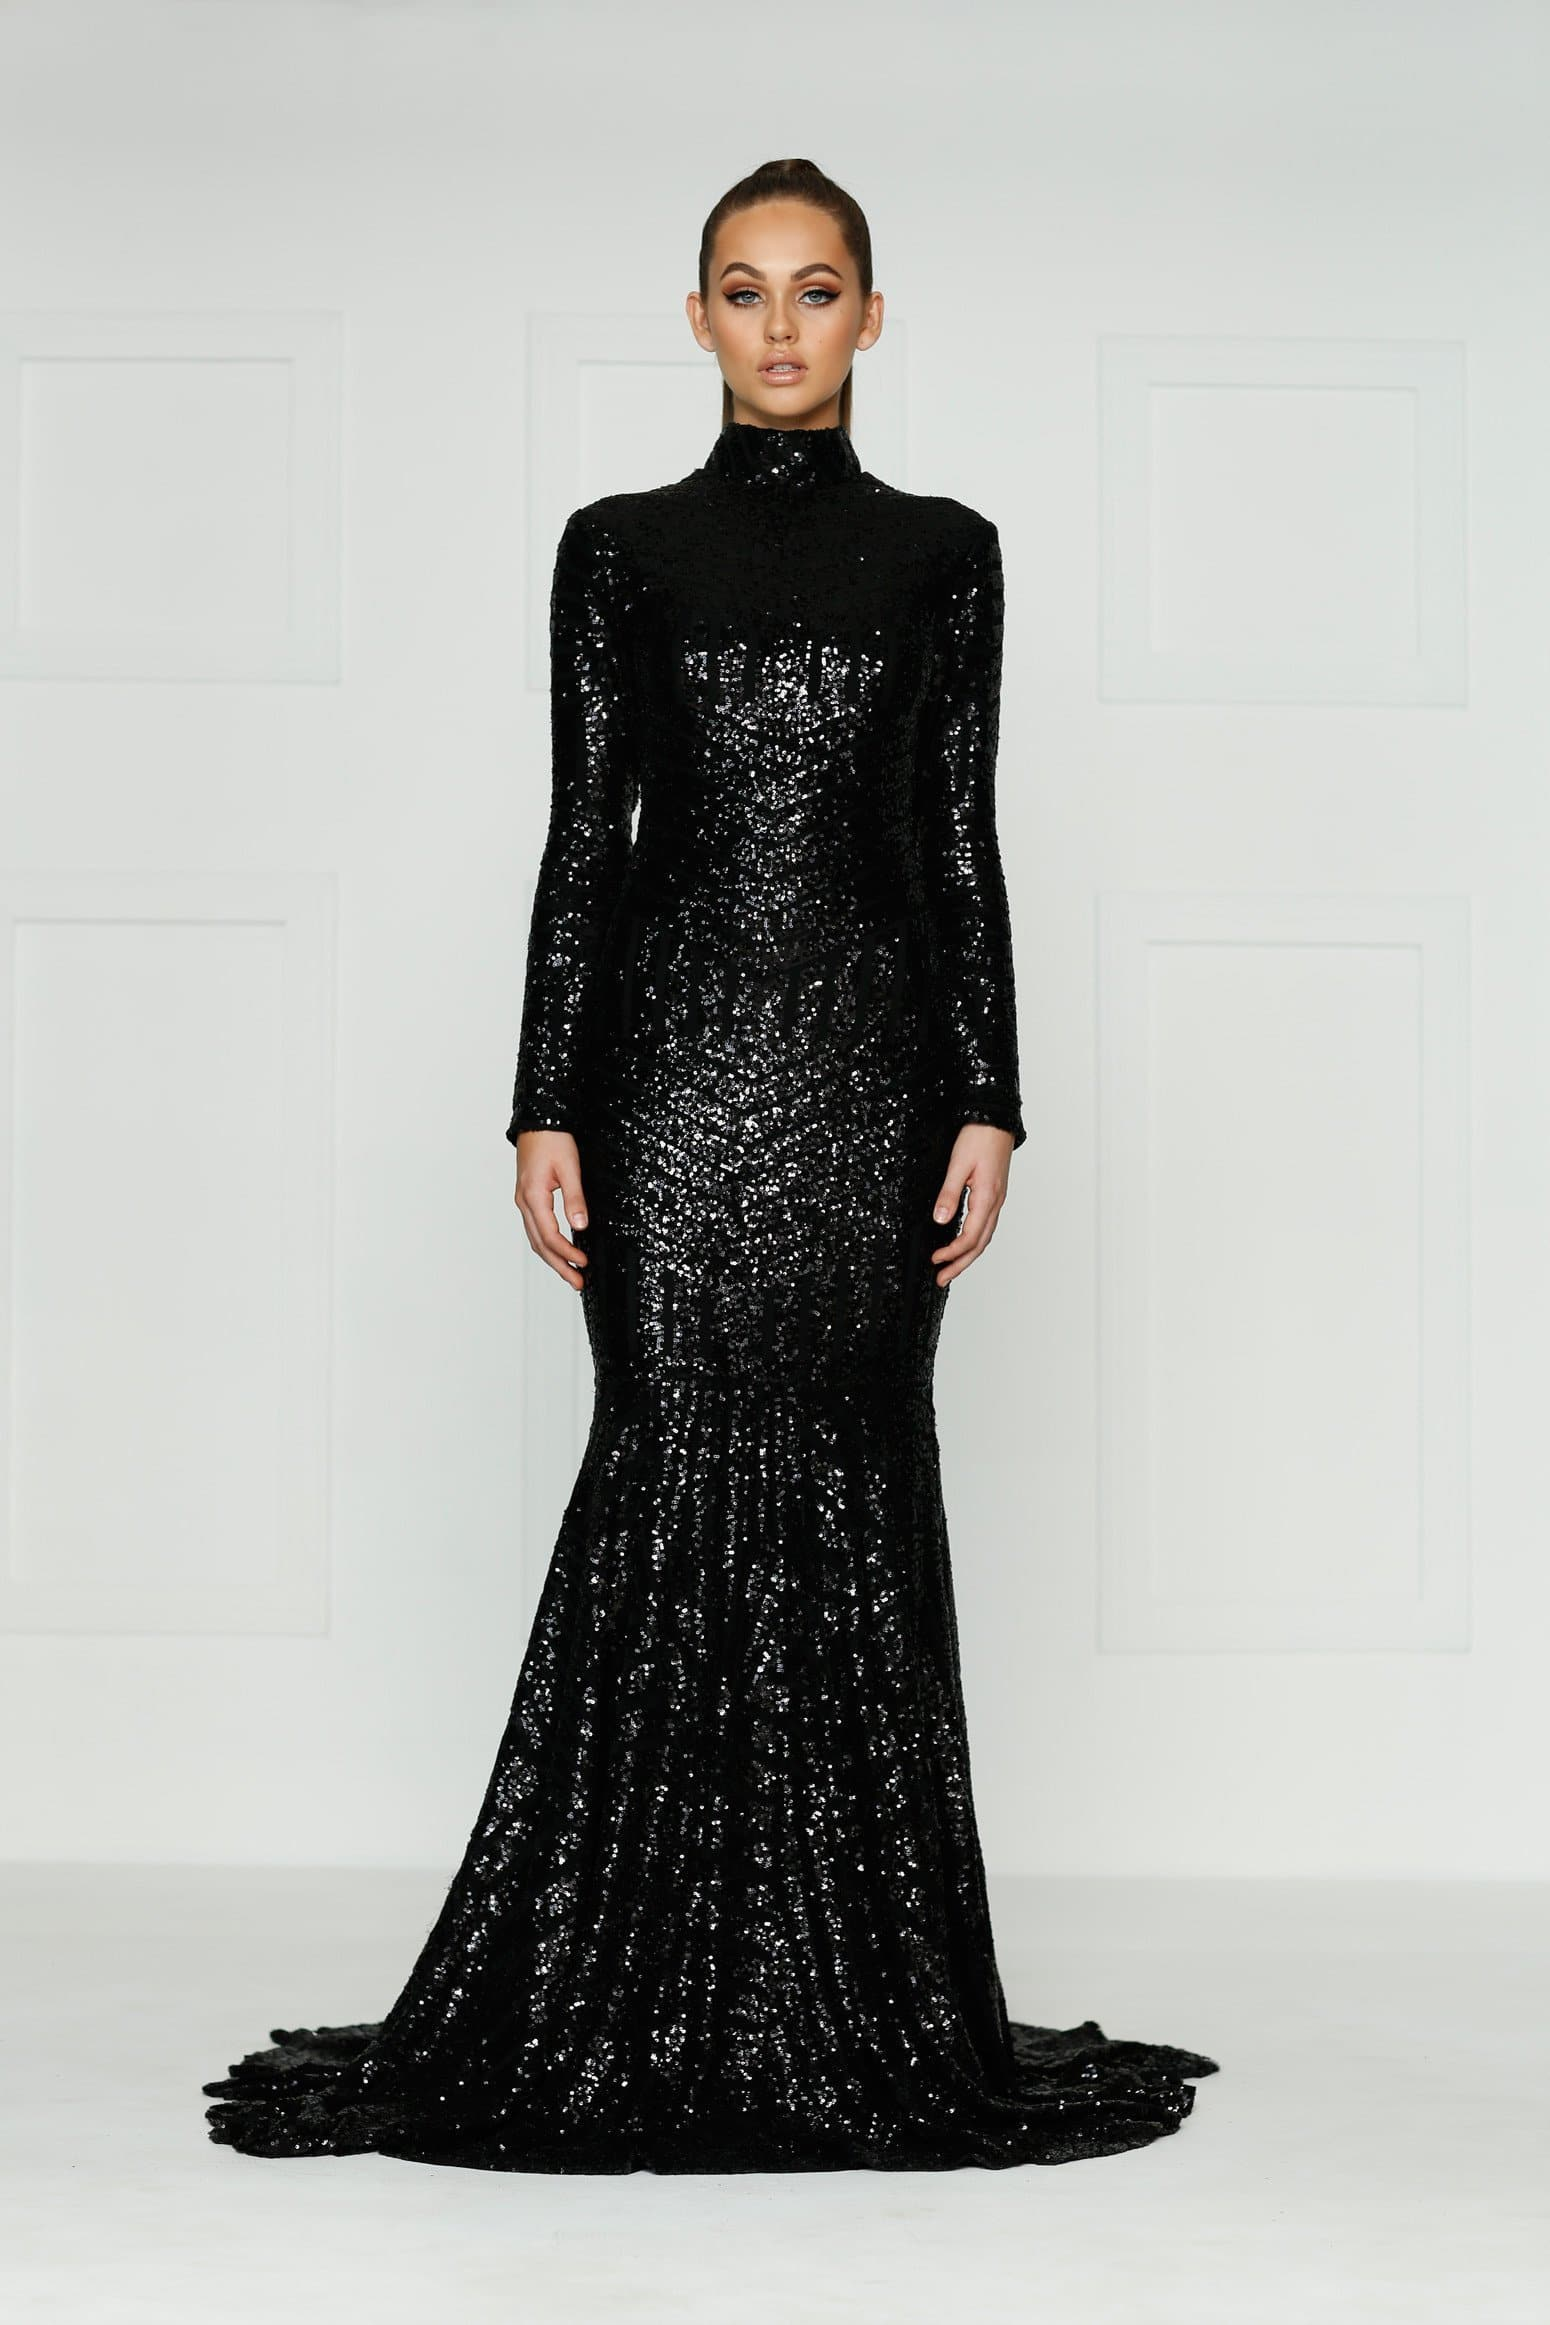 b109973046f5 A N Liz - Black High Neck Sequins Gown with Long Sleeves – A N Luxe ...